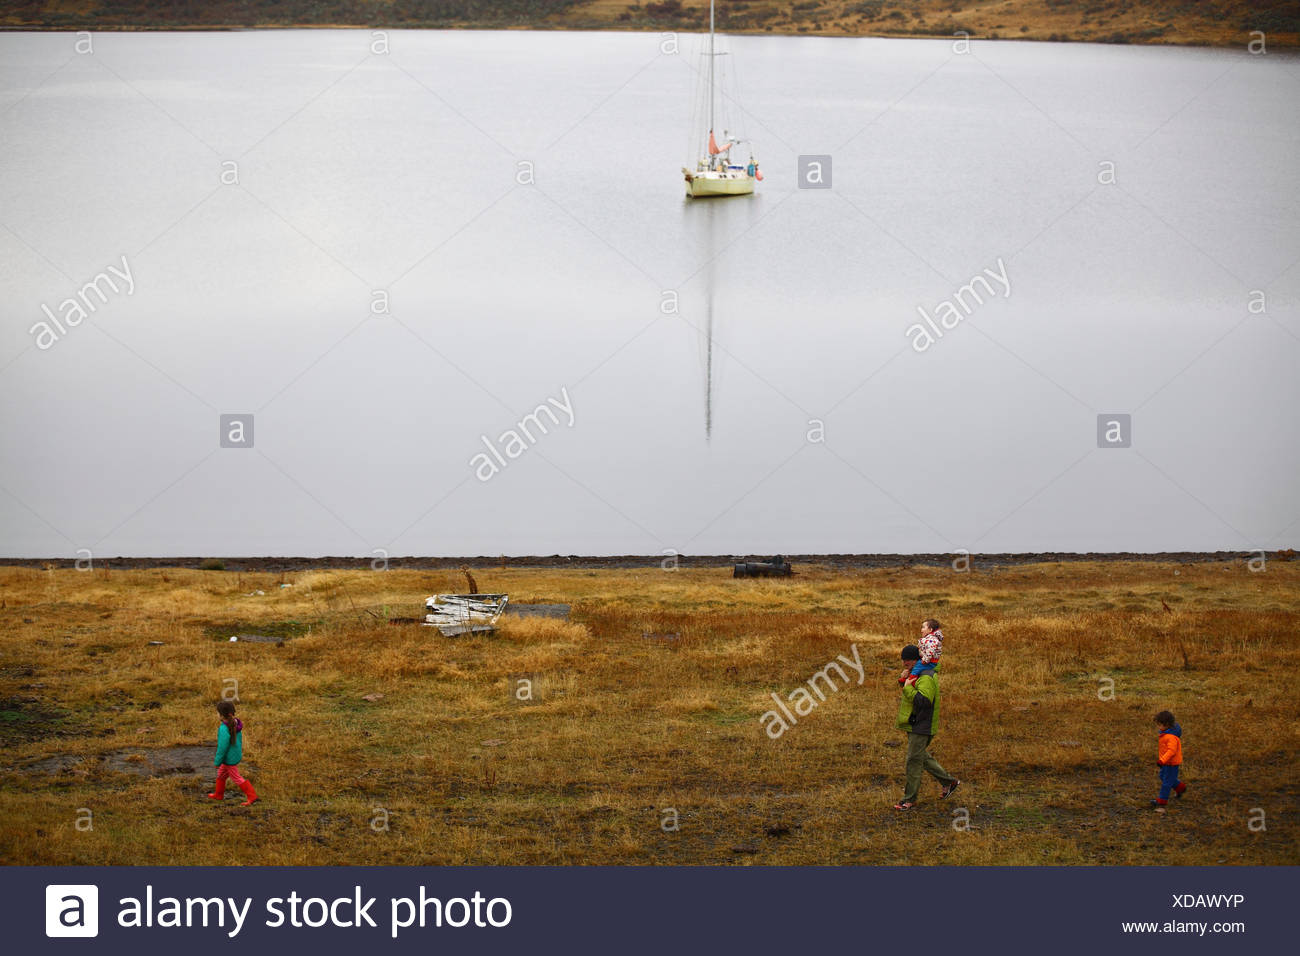 A family walks along the Eberhard fjord in a pasture near Puerto Prat, Chile. - Stock Image